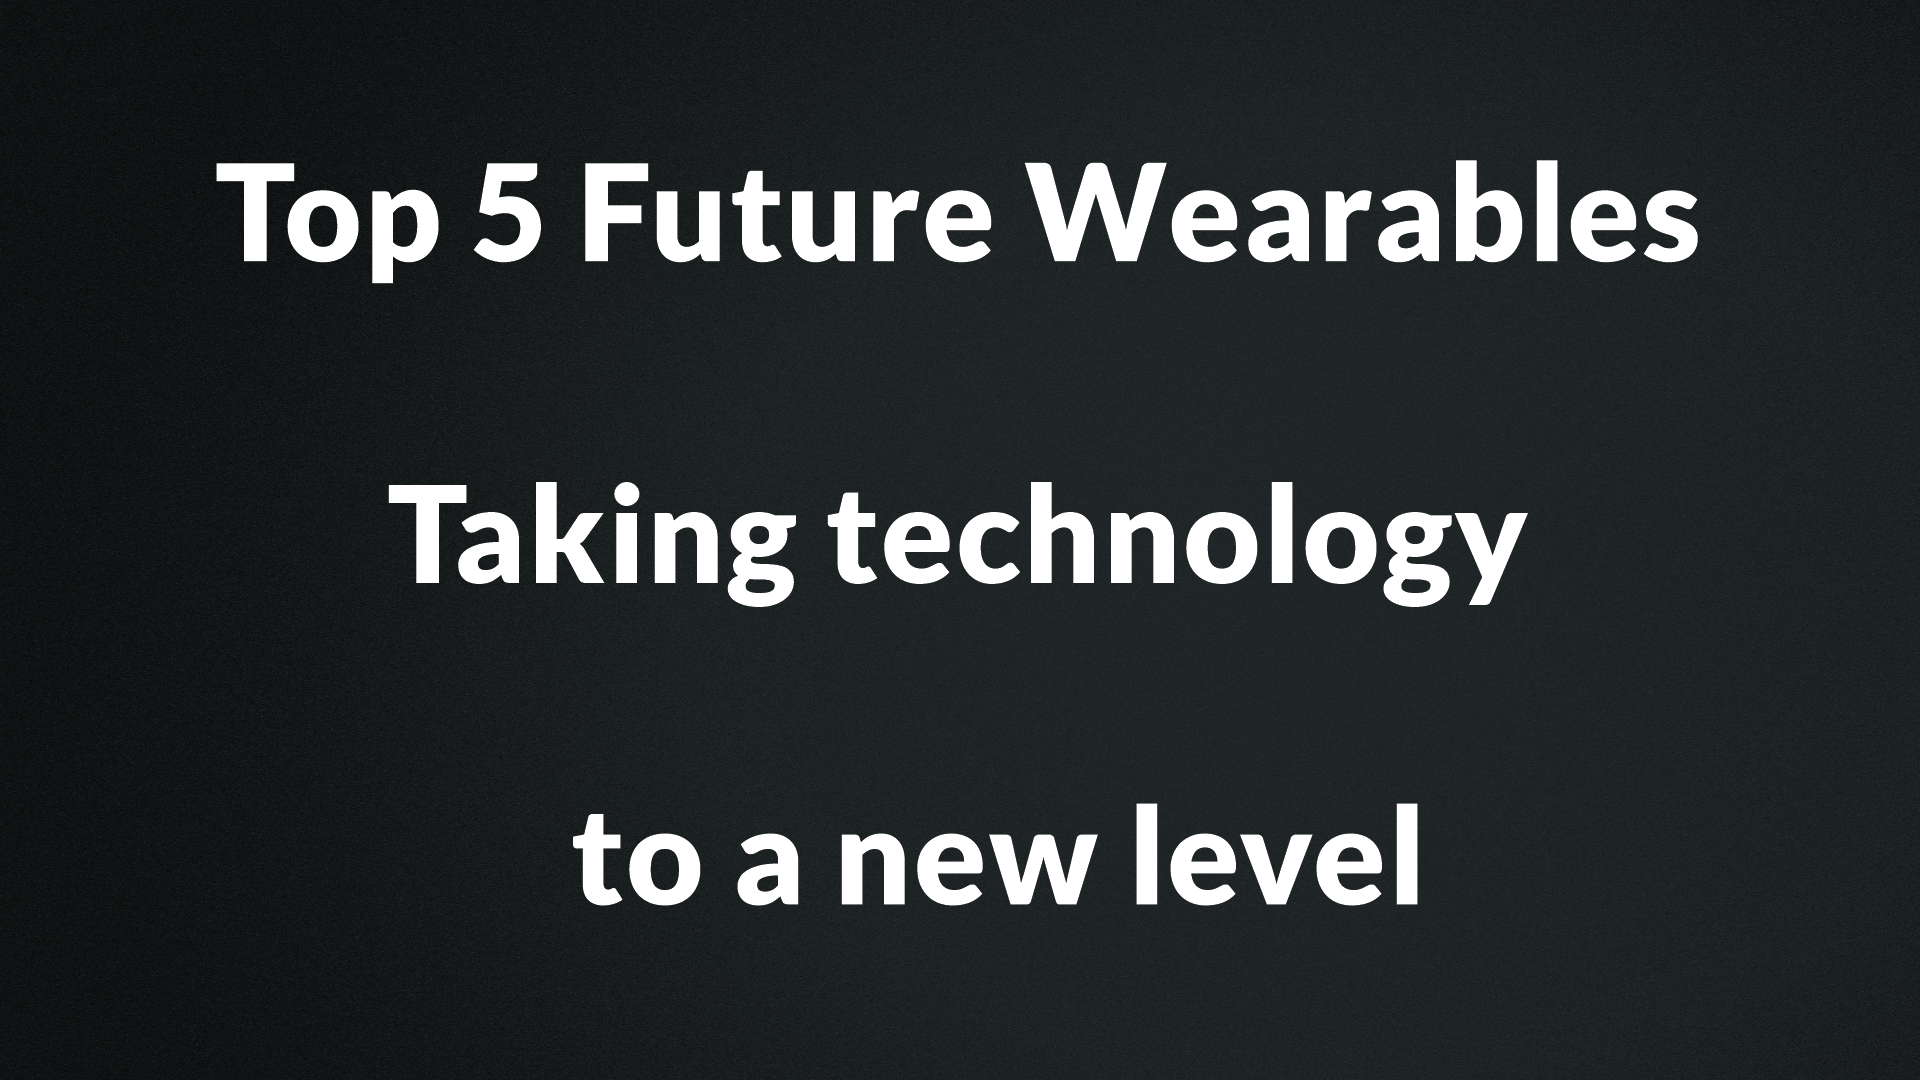 Top 5 Future Wearables - Taking technology to a new level